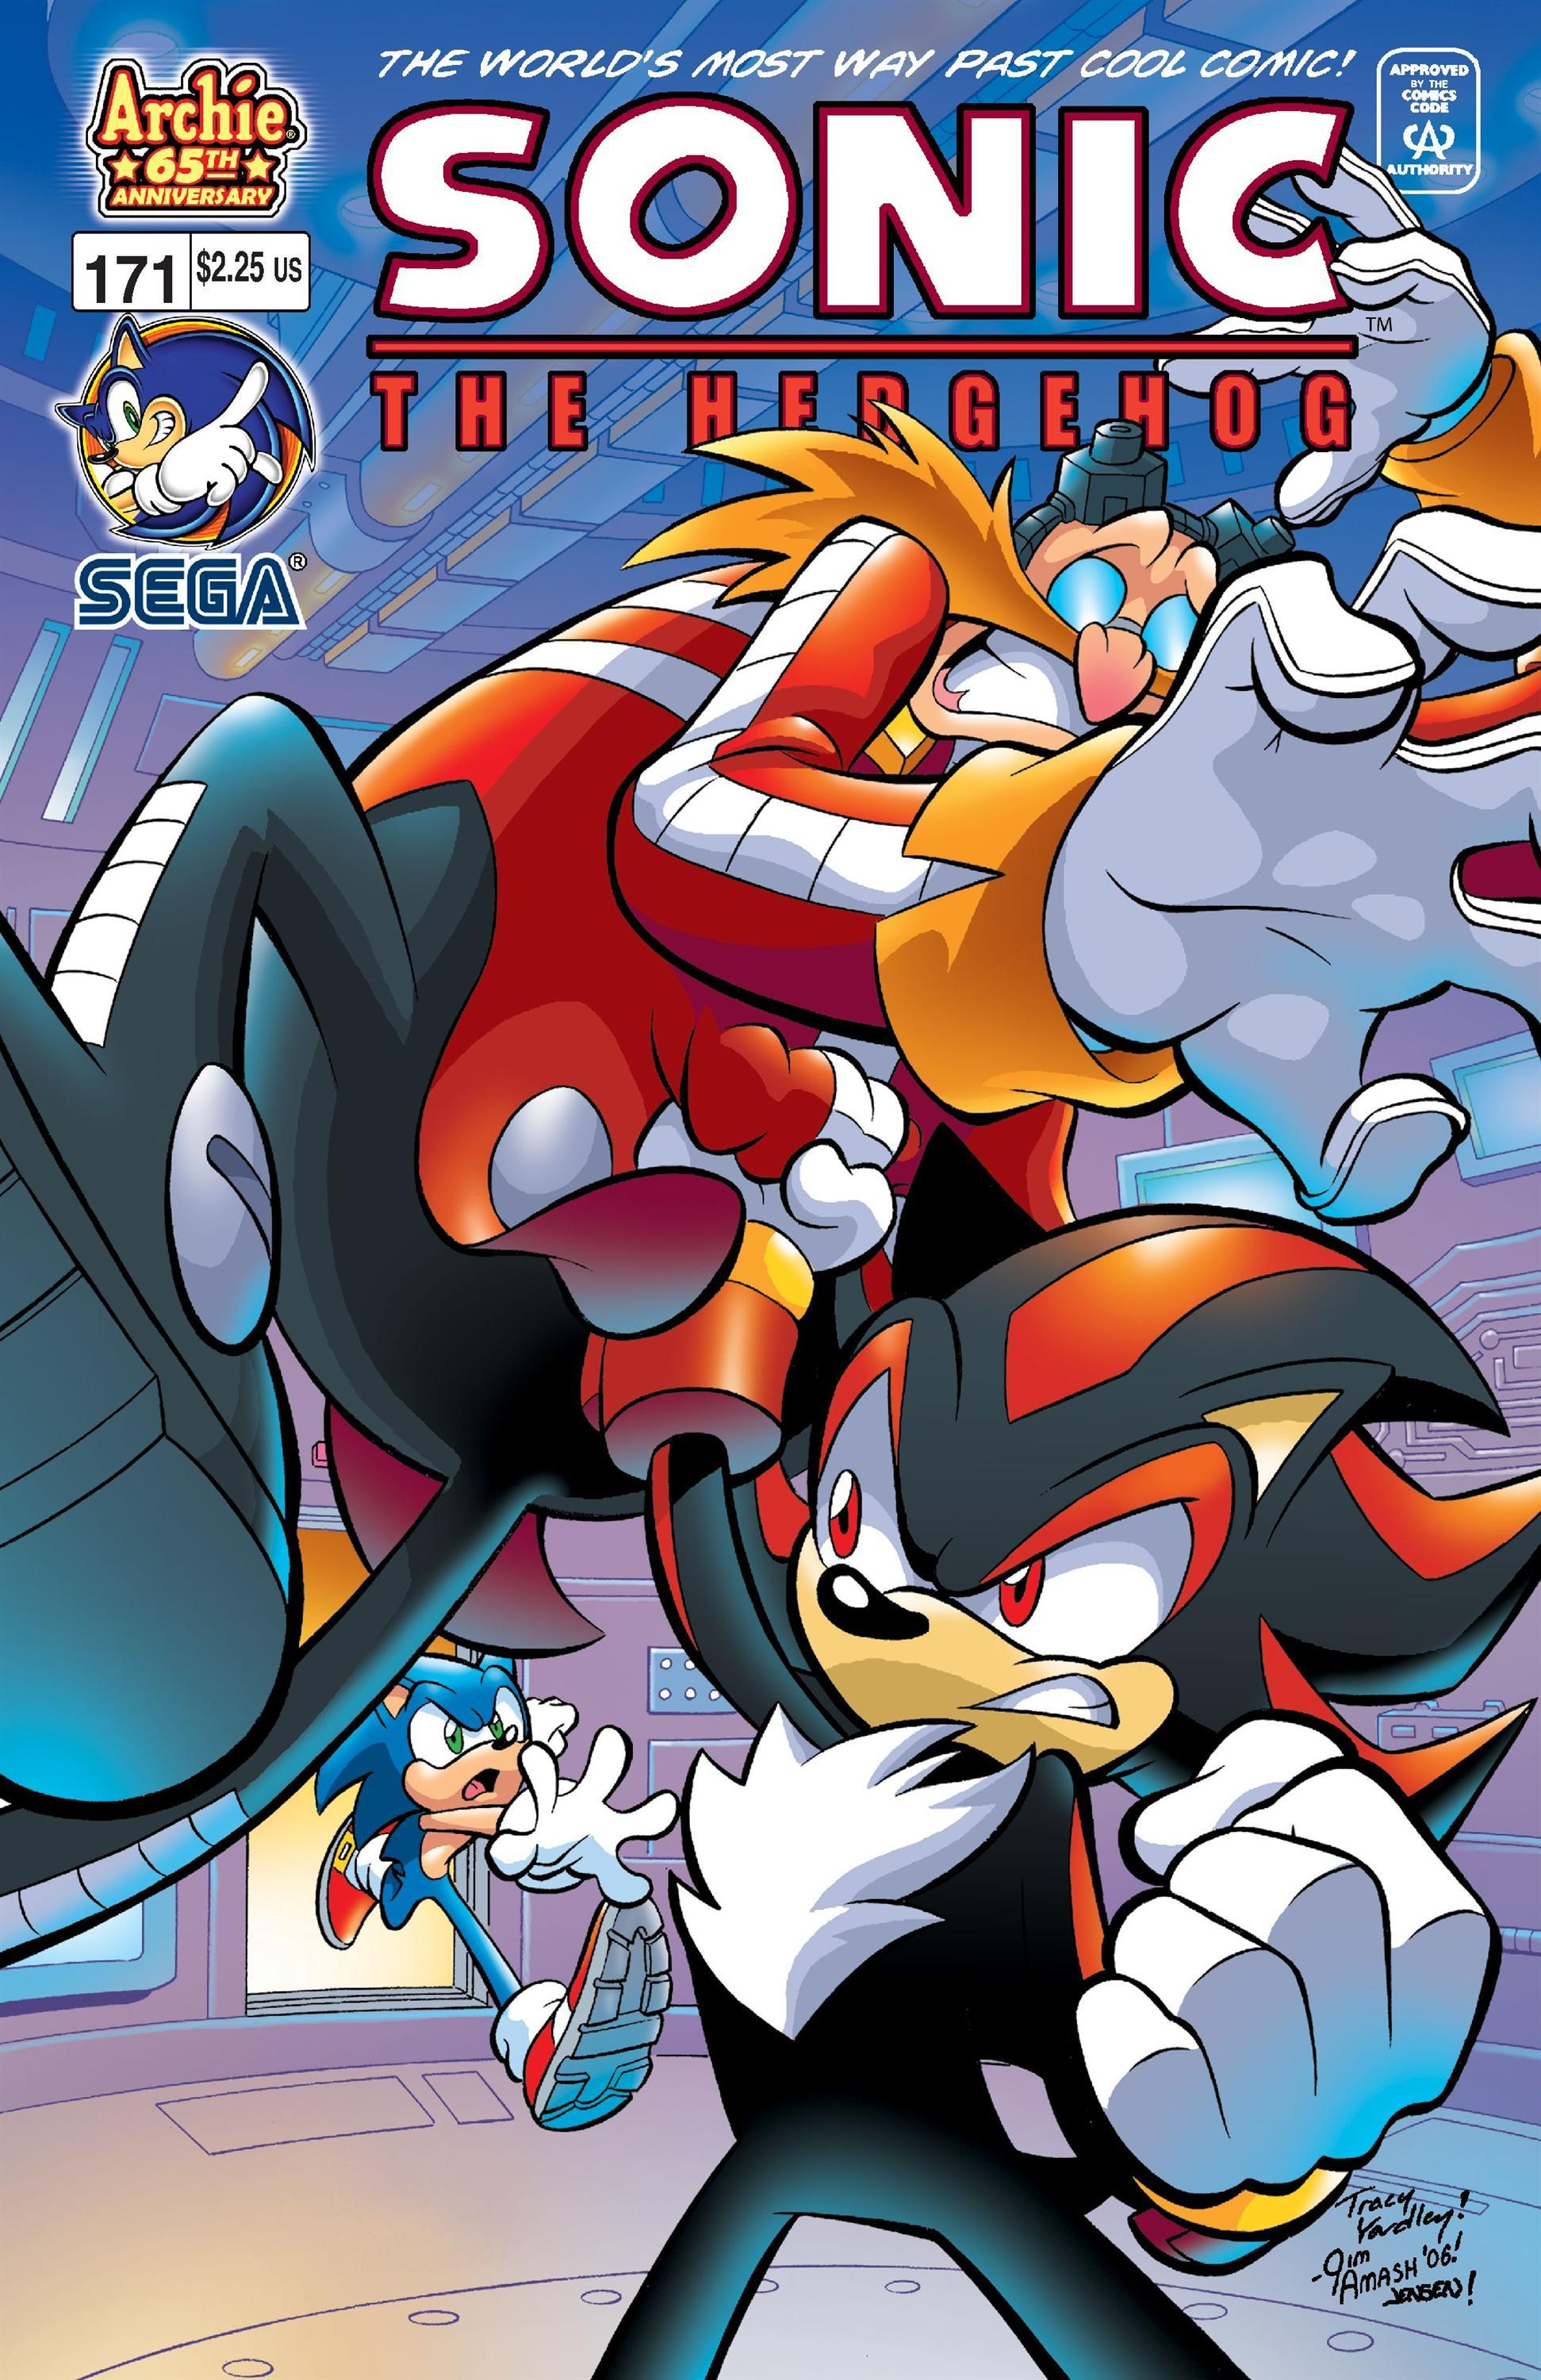 Archie Sonic the Hedgehog Issue 171